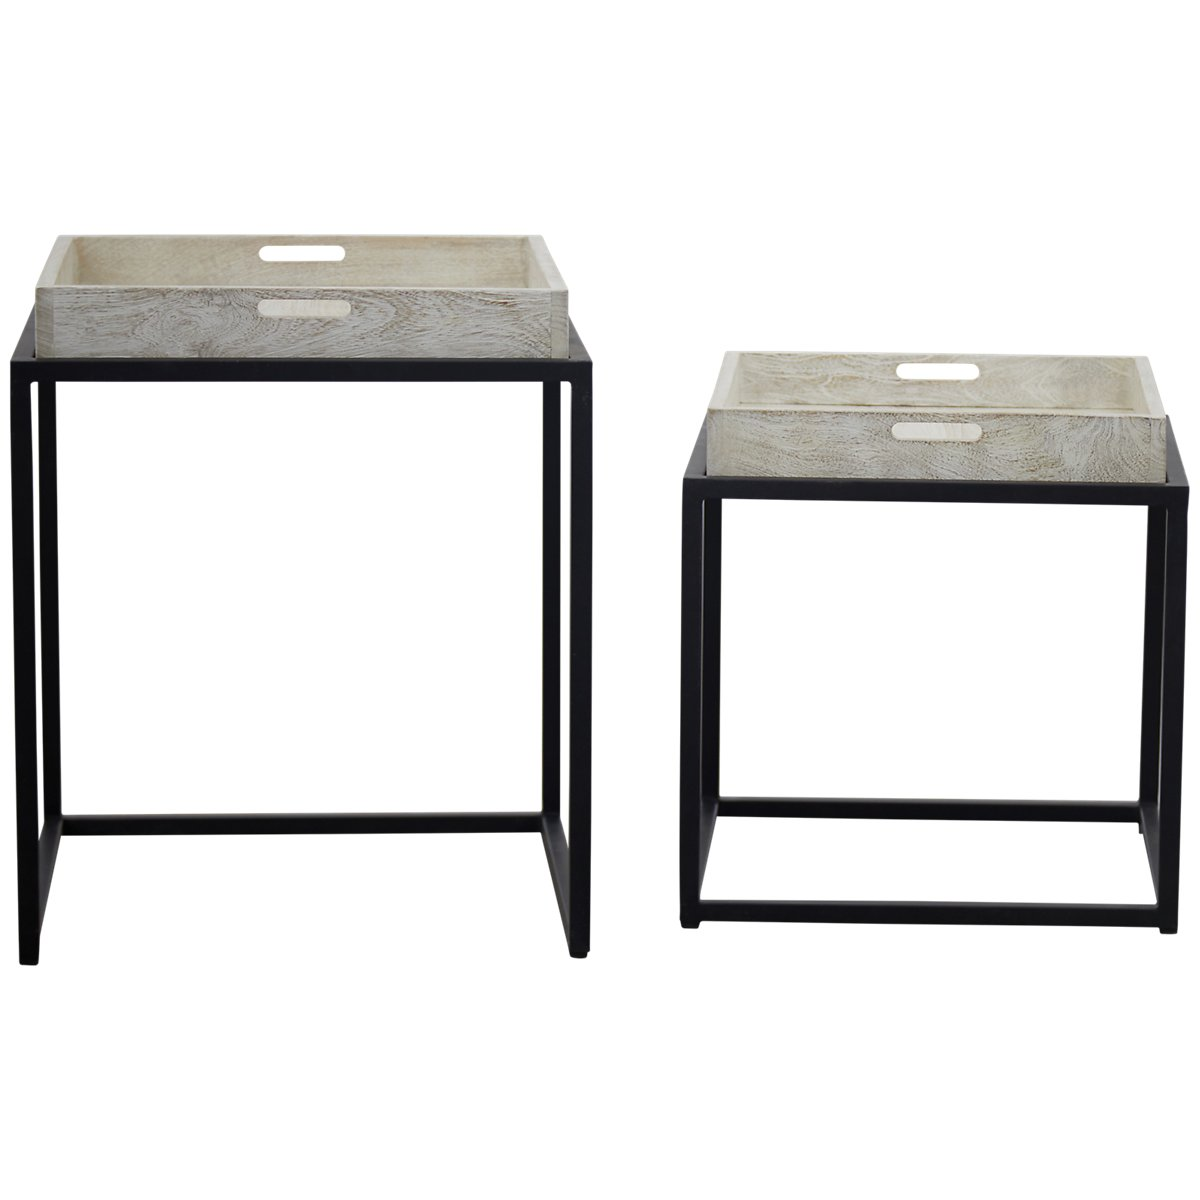 City furniture rei light tone set of 2 nesting tables rei light tone set of 2 nesting tables watchthetrailerfo